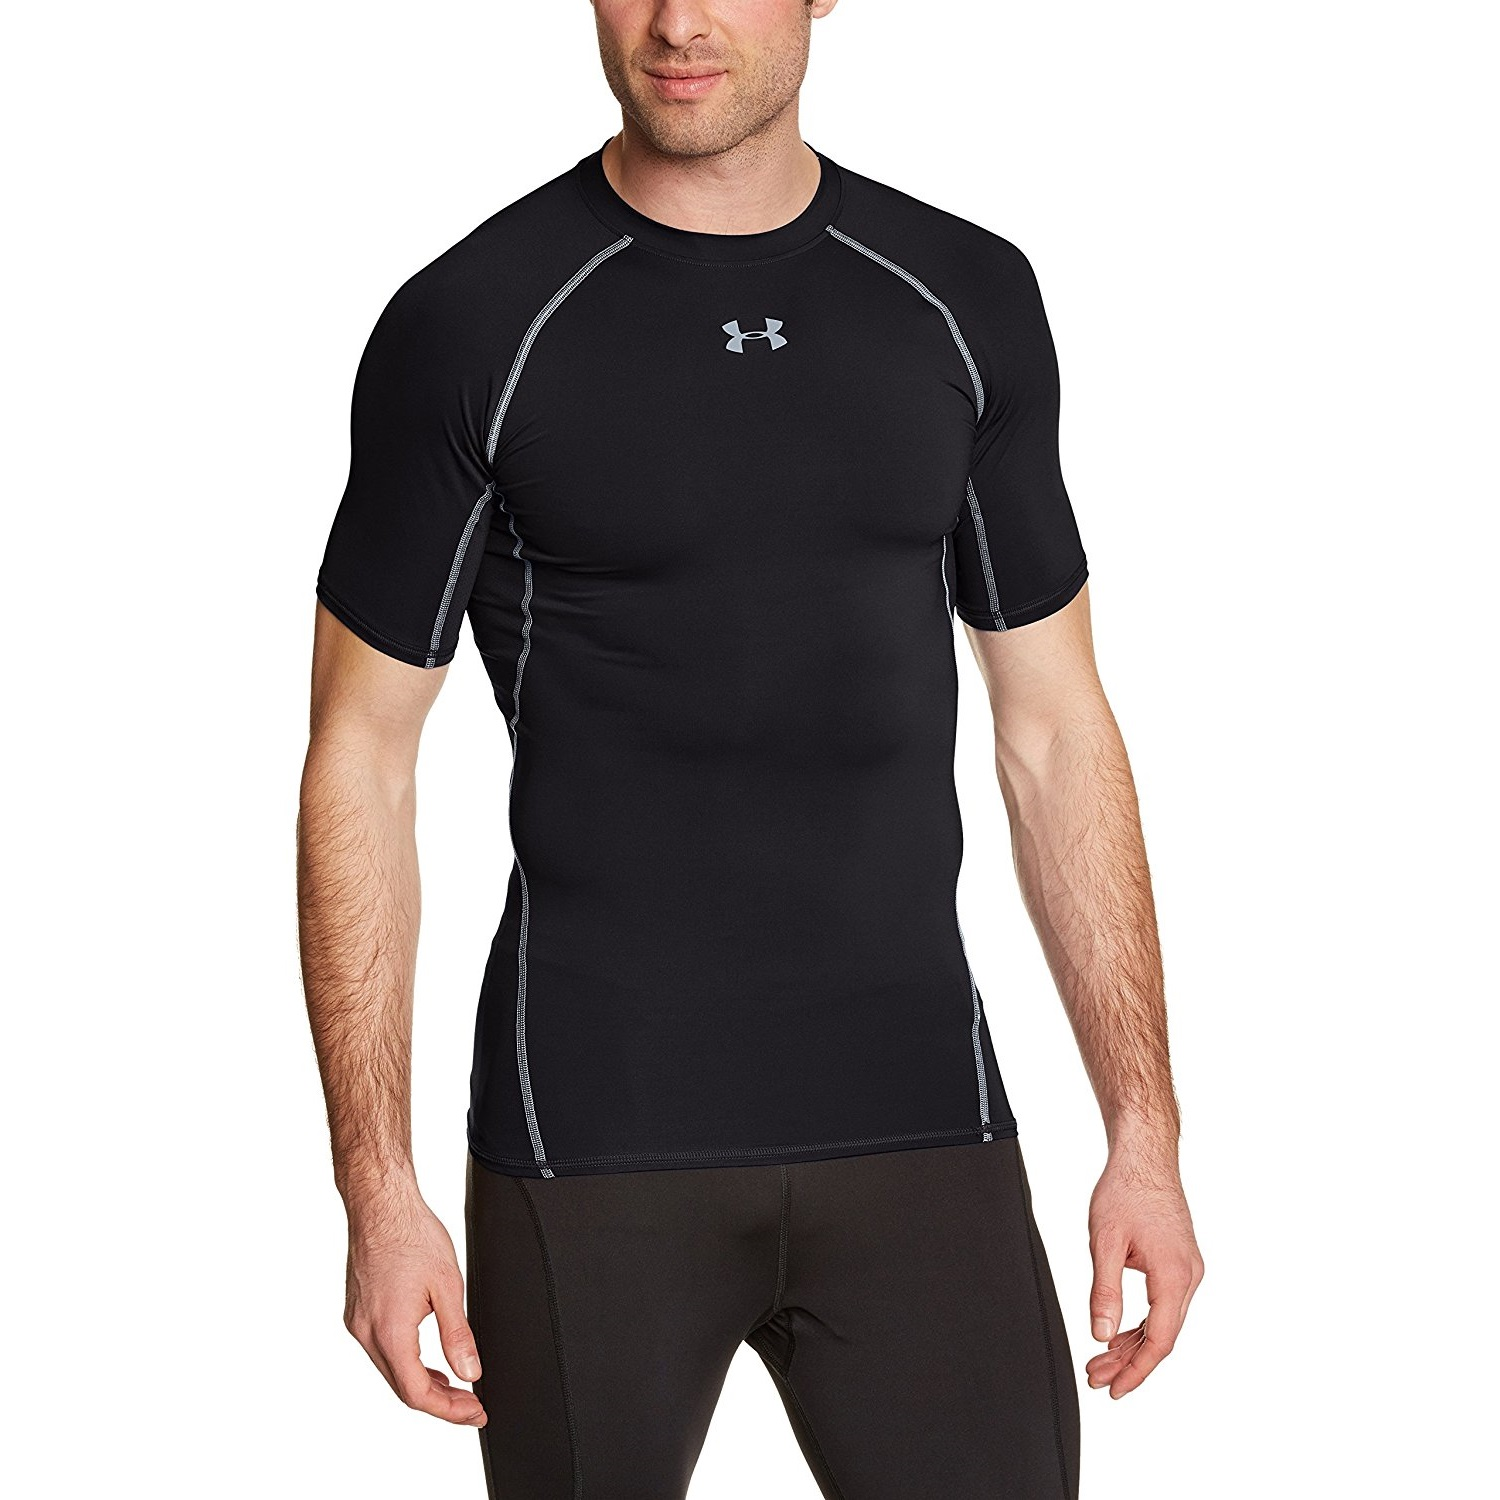 Under armour men 39 s heatgear short sleeve compression yoga Yoga shirts with sleeves